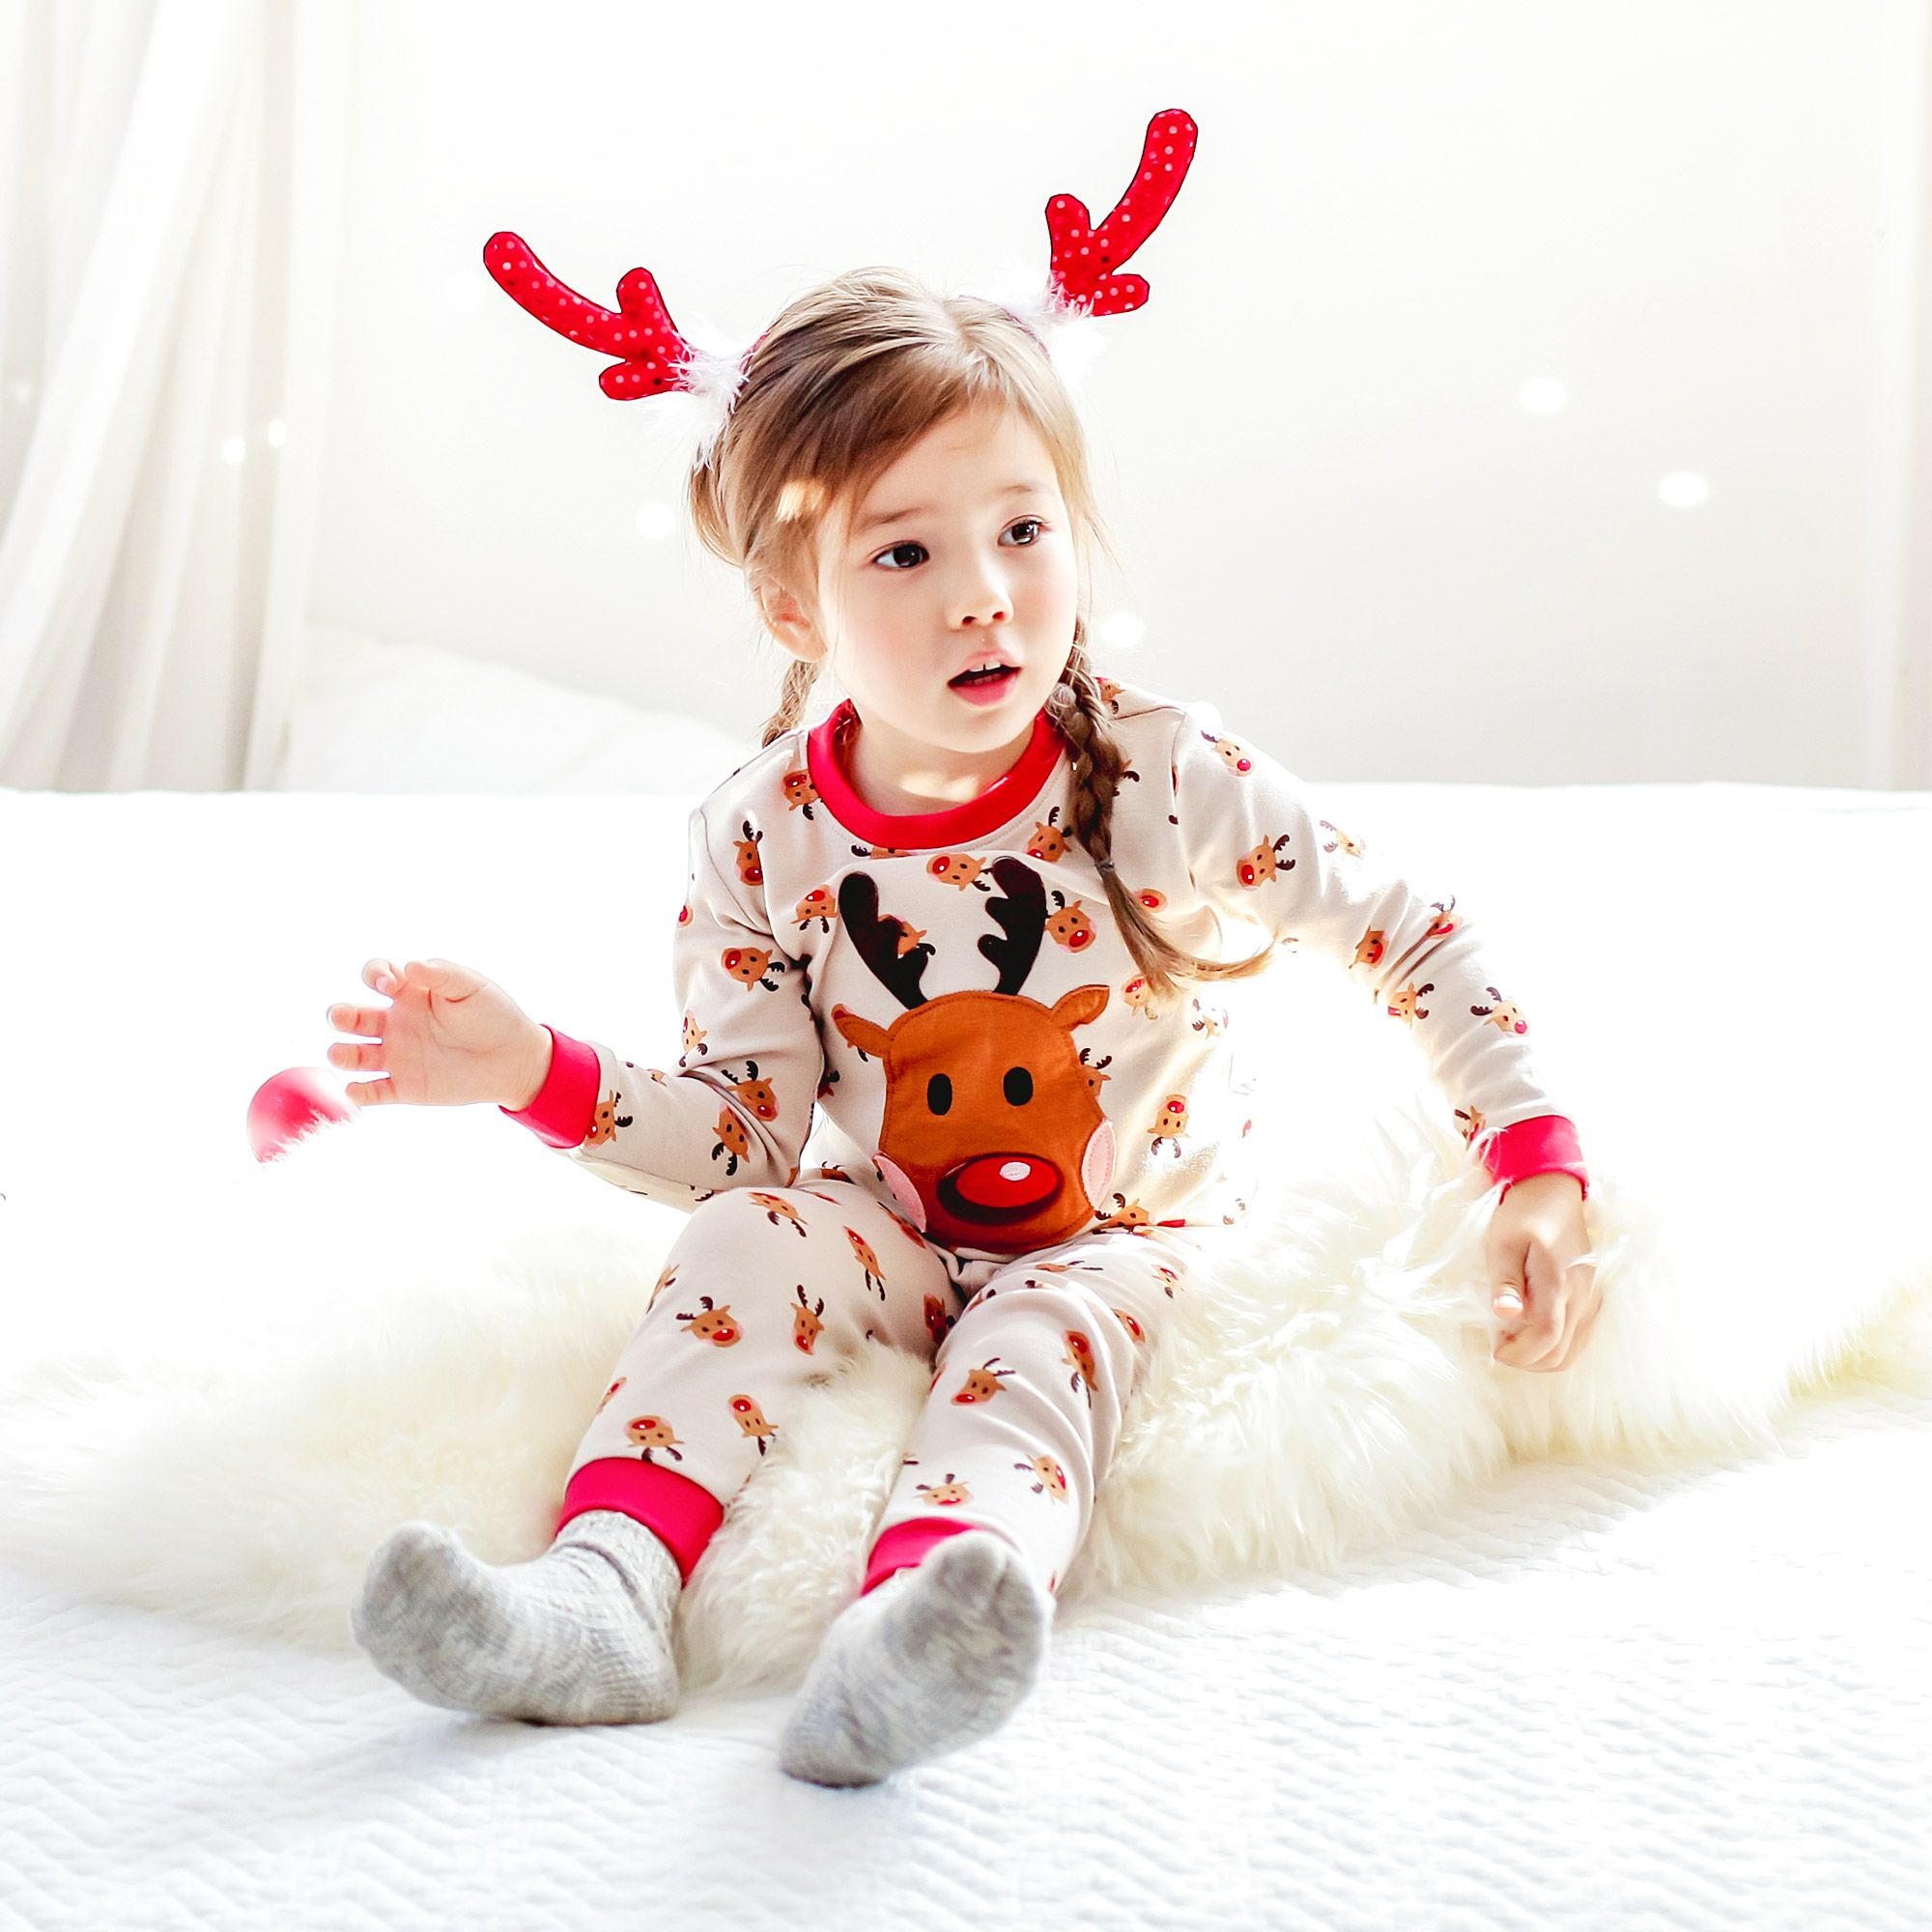 Vaenait Baby Toddler Kids Clothes Christmas Sleepwear Set